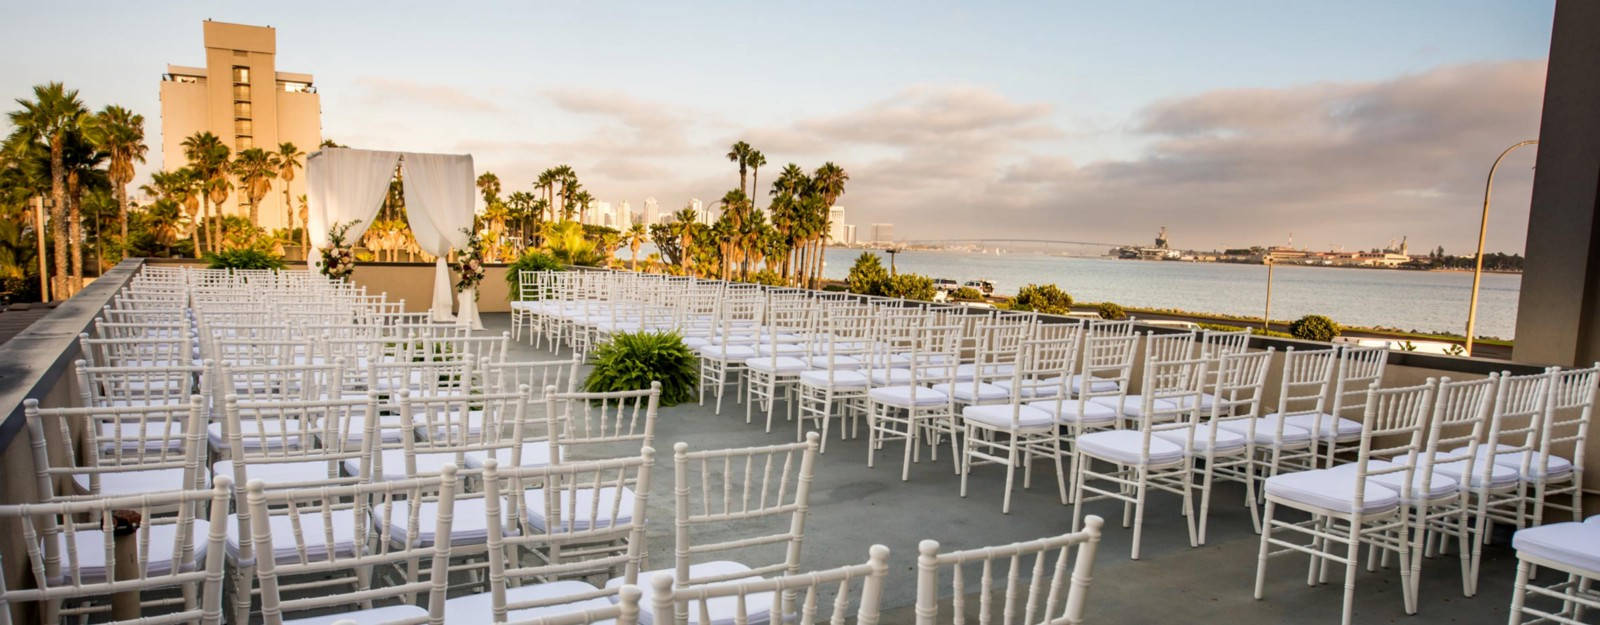 How to find a unique wedding venue in san diego harbor view loft this time around most of the sought after san diego wedding venues are already booked you were just a little late in retaining one for yourself solutioingenieria Image collections